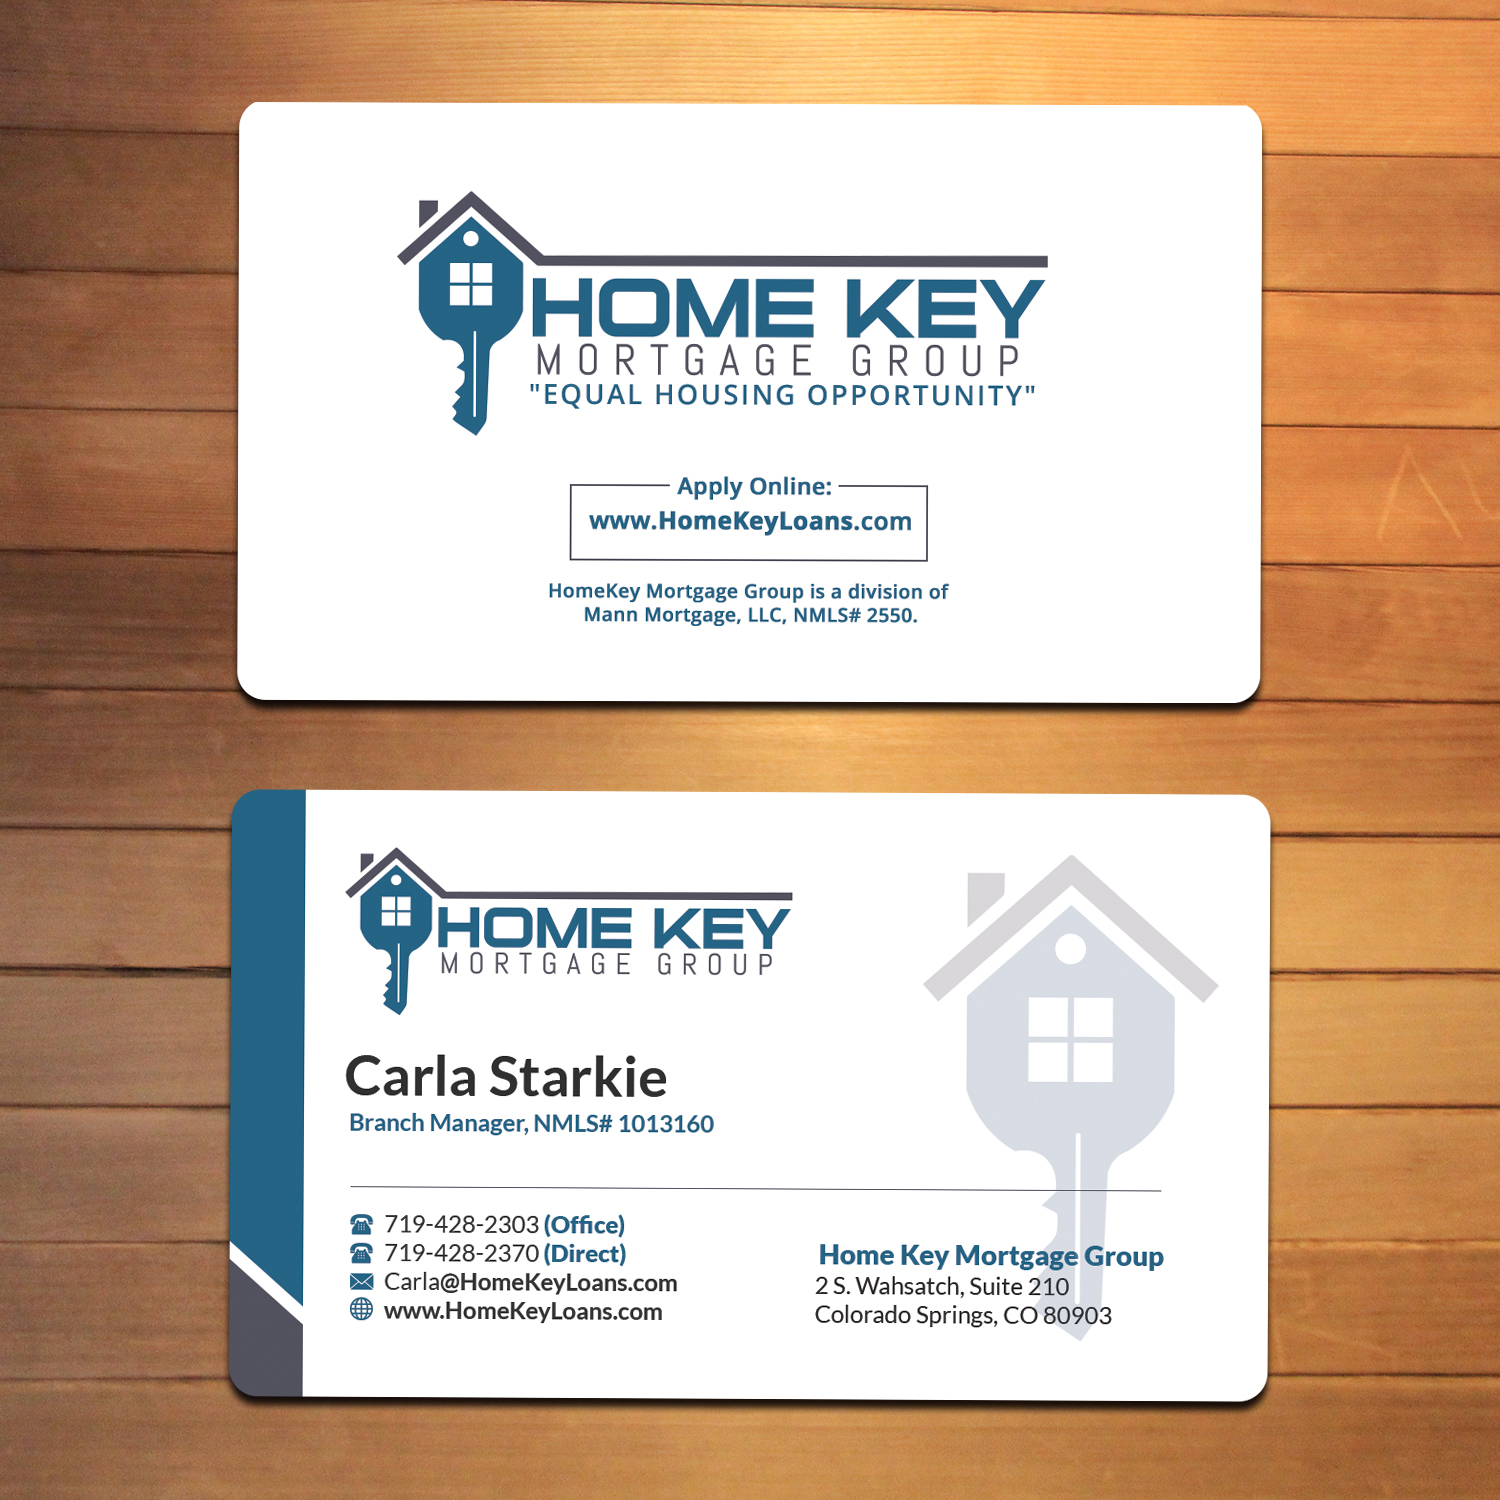 It company business card design for home key mortgage group by business card design by creativmindsja for home key mortgage group design 15232639 reheart Image collections